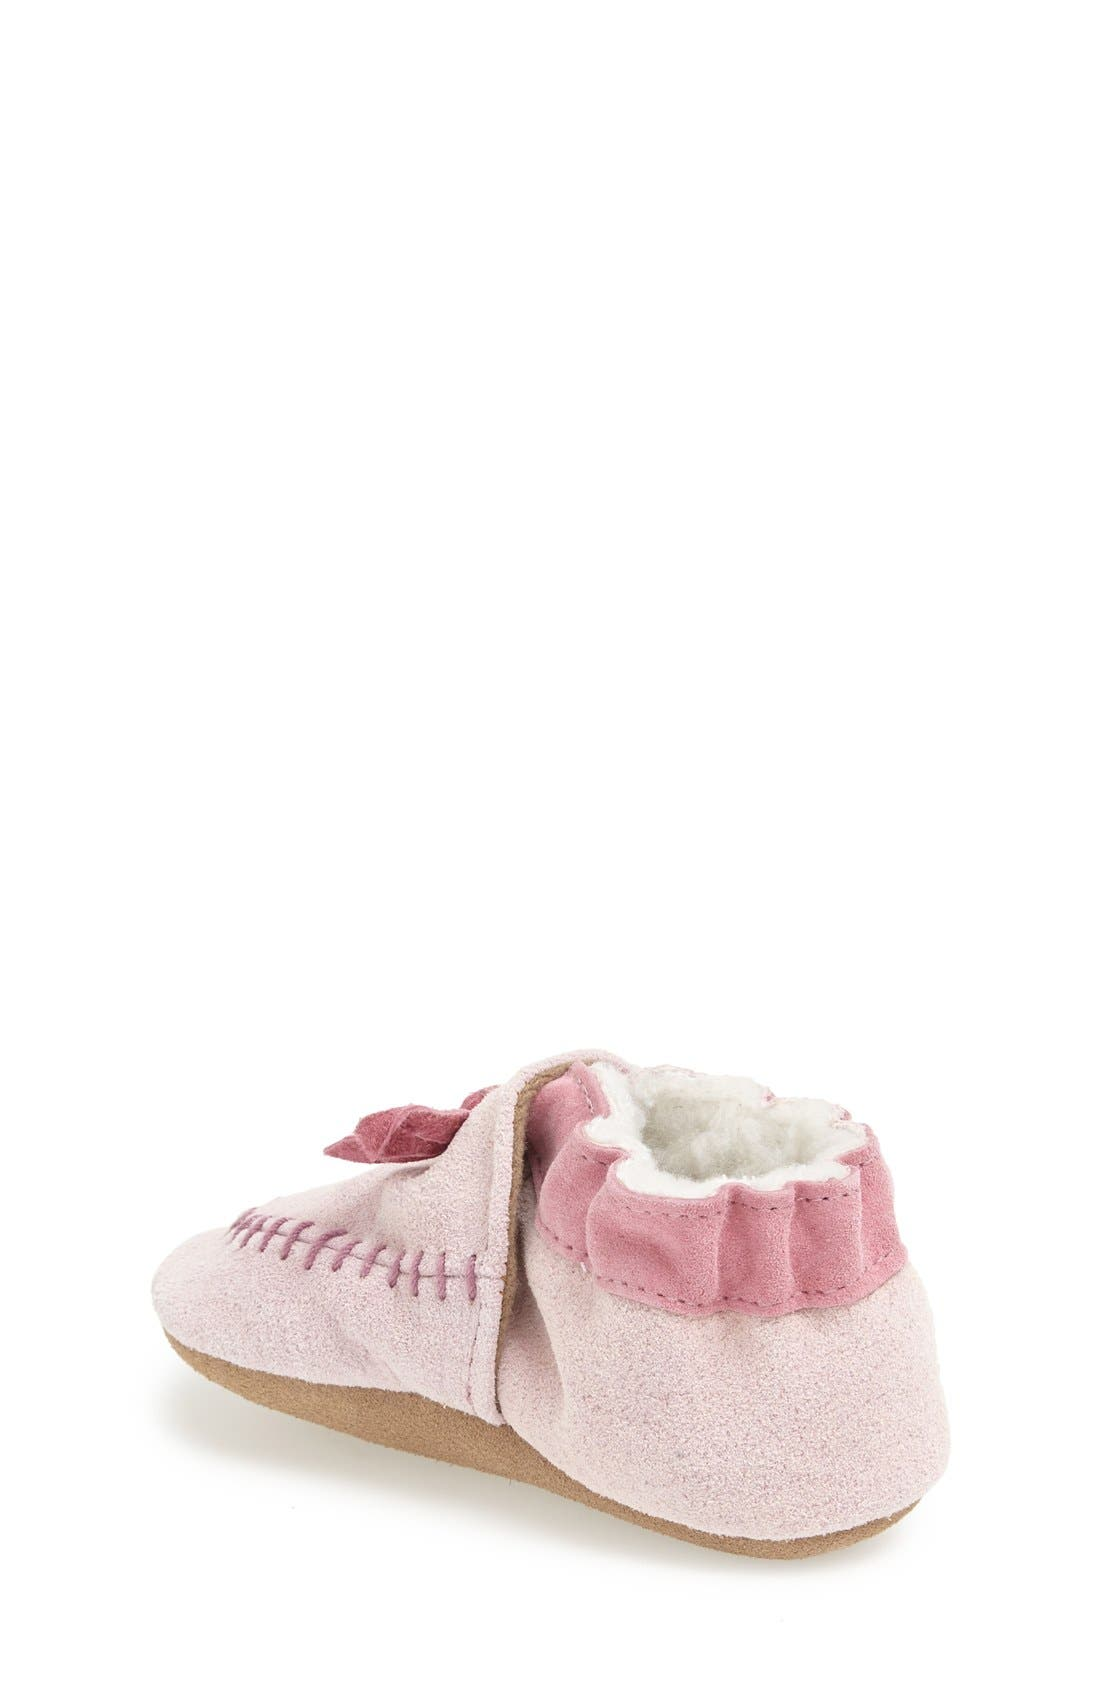 Cozy Moccasin Crib Shoe,                             Alternate thumbnail 4, color,                             PINK